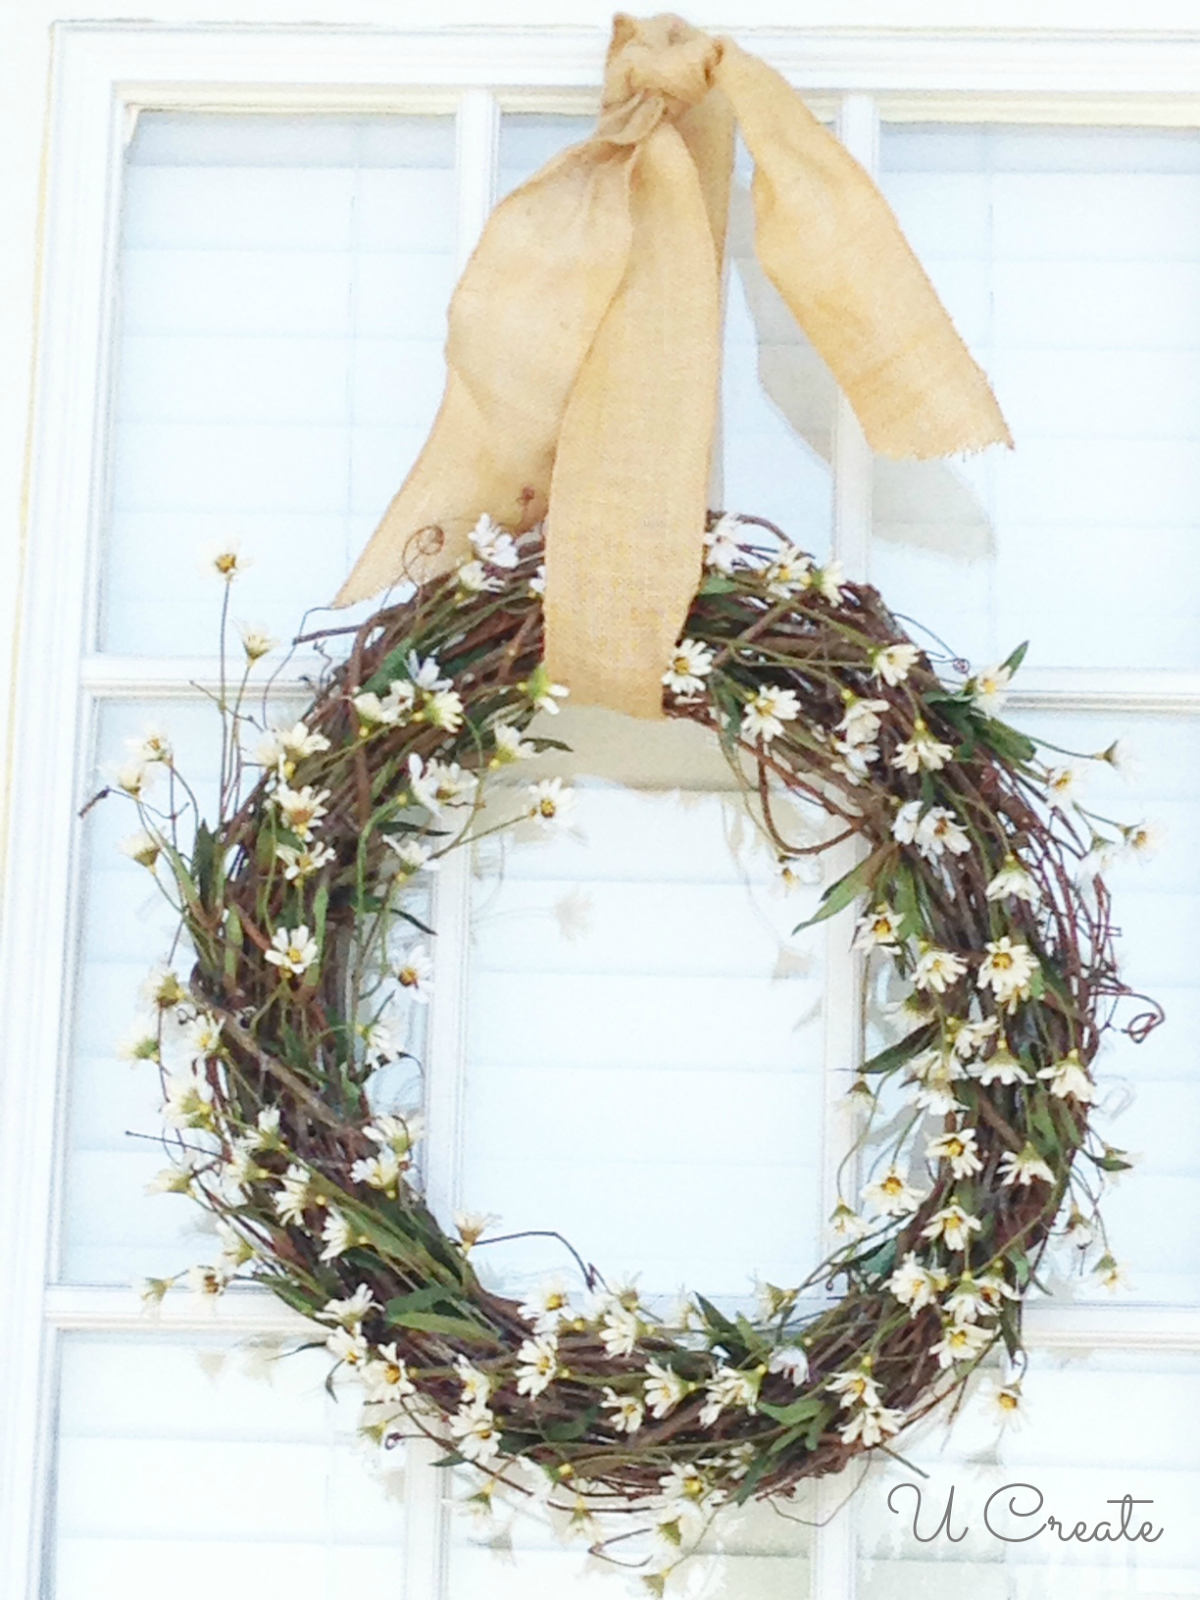 Summer Wreath Tutorial for Beginners - 3 steps! u-createcrafts.com